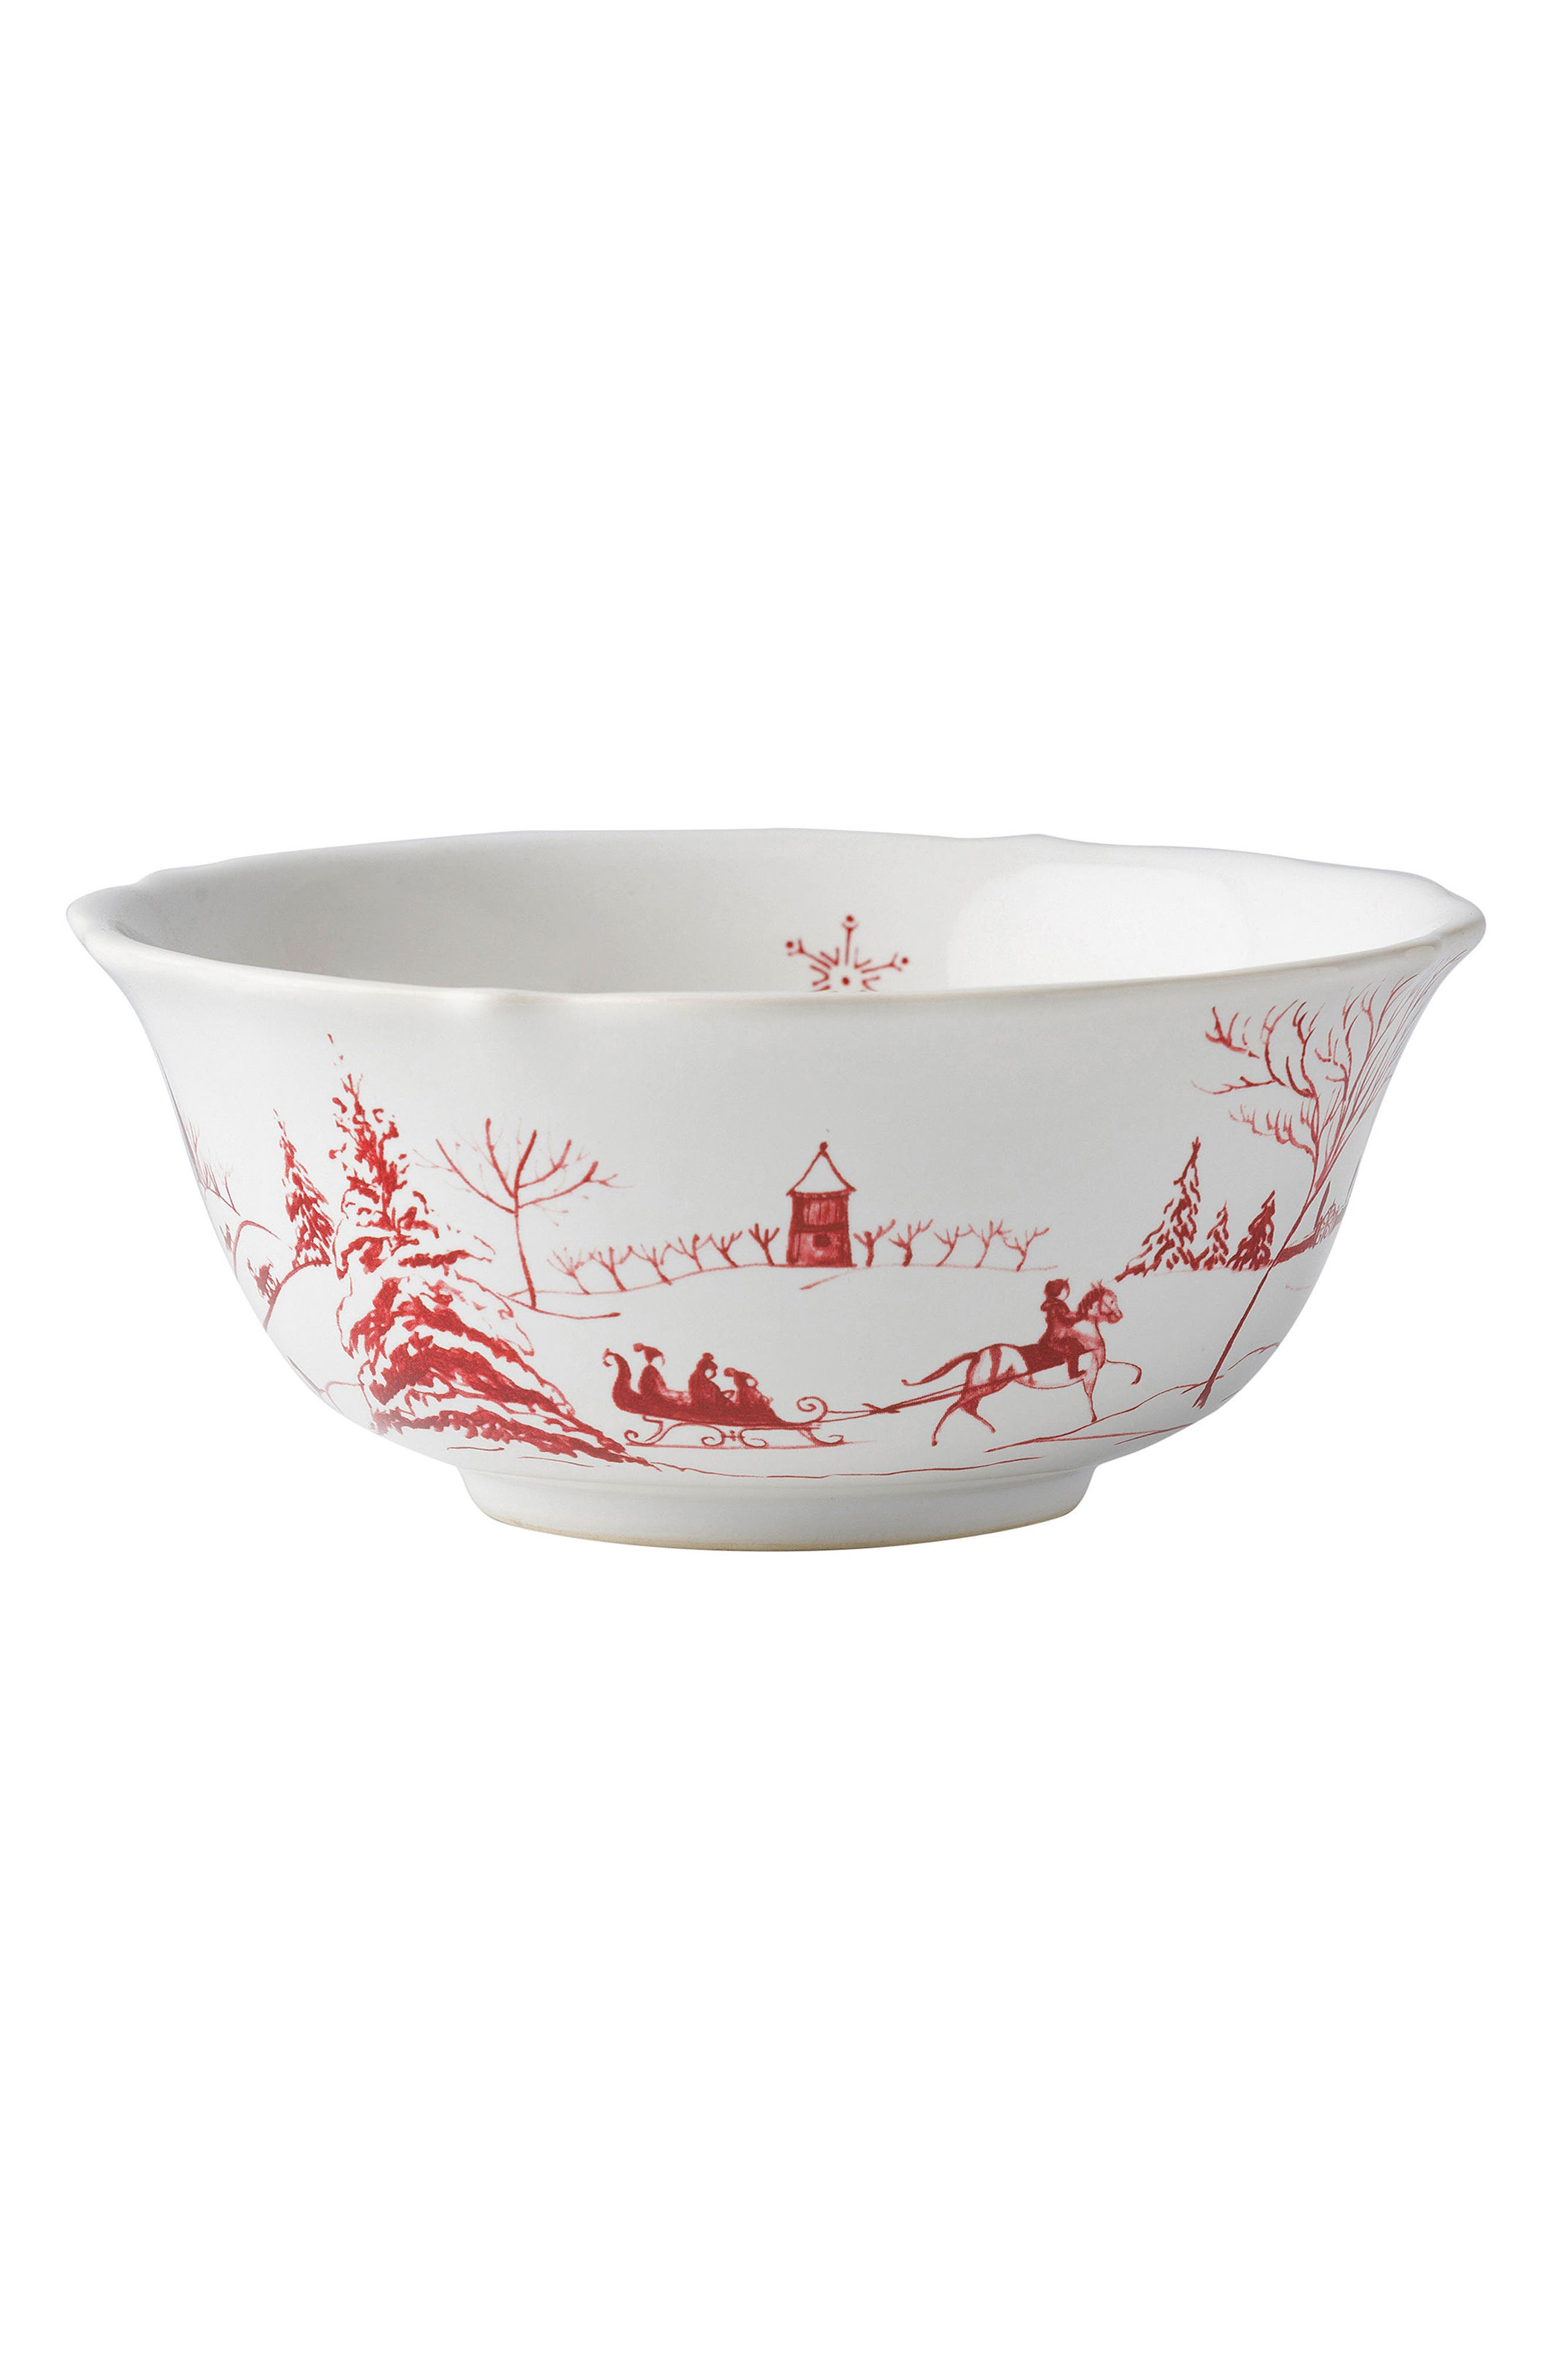 Winter Frolic Ceramic Cereal Bowl,                             Alternate thumbnail 3, color,                             Ruby